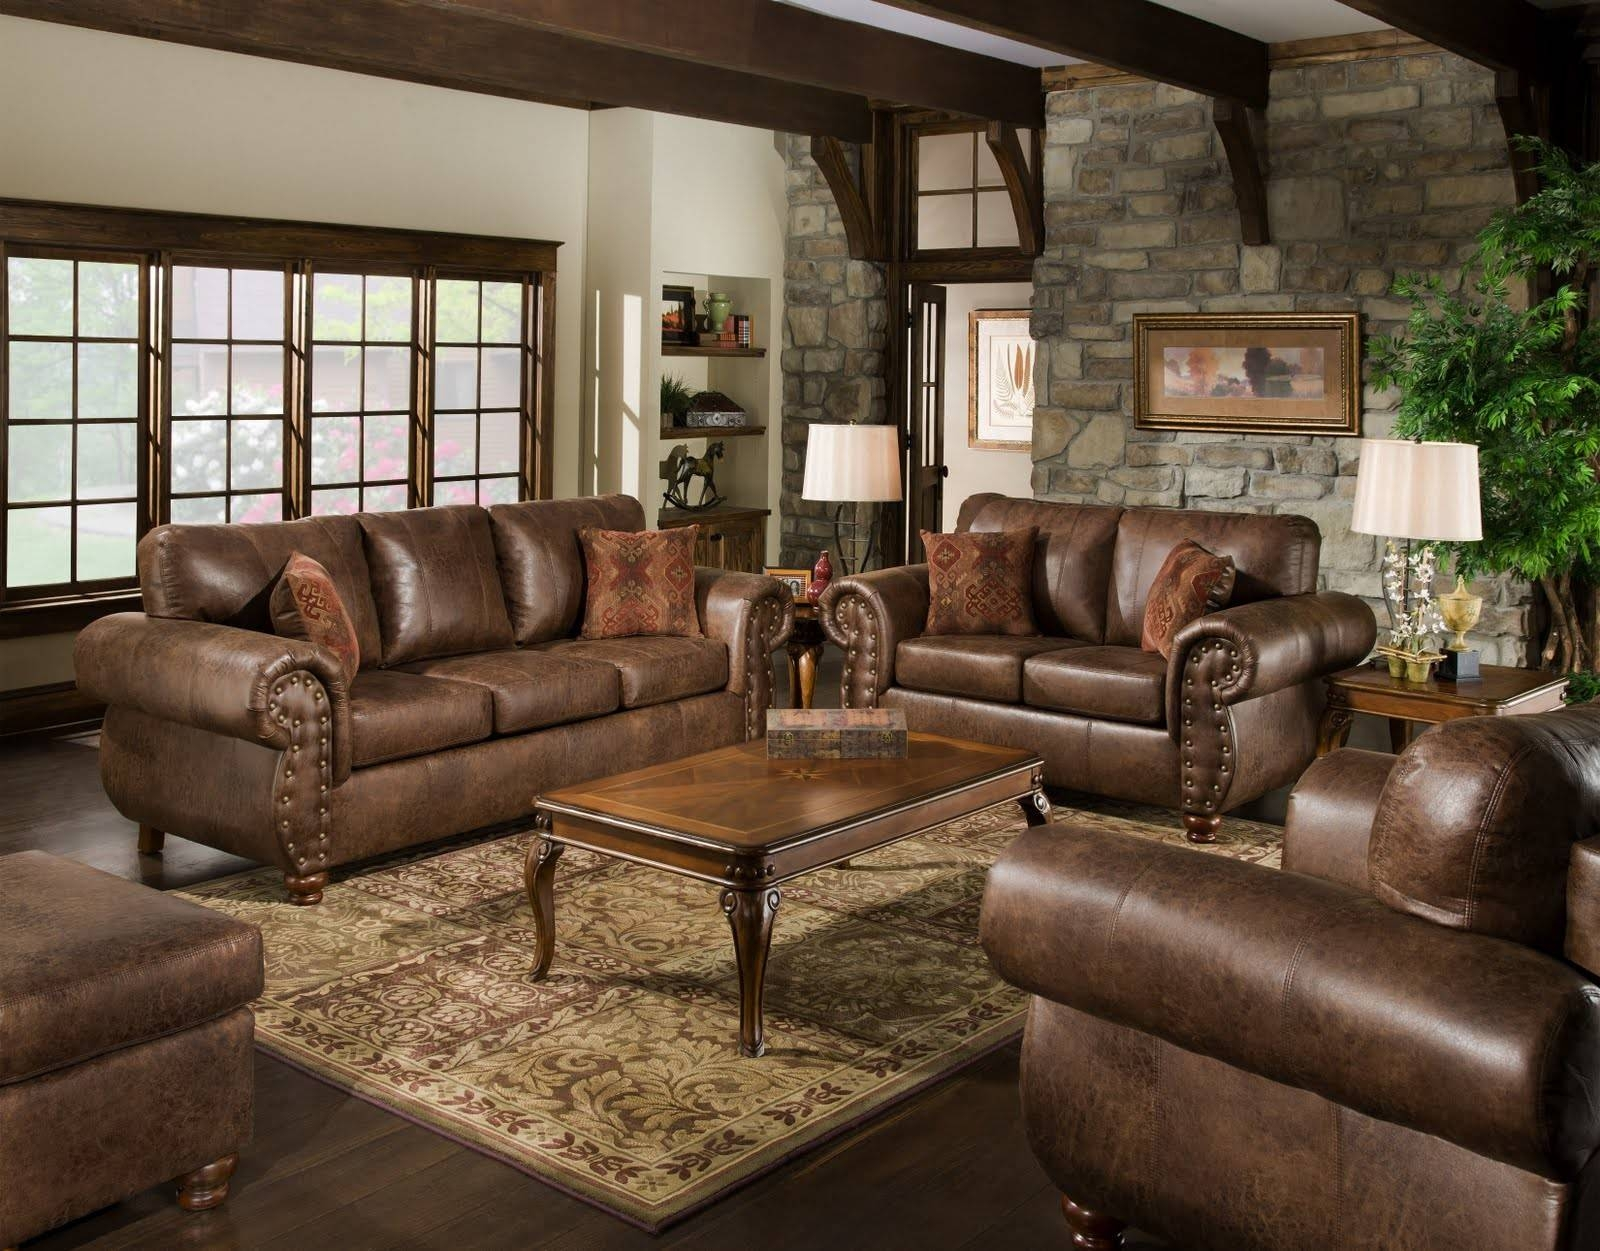 Living Room Designs Indian Style Glass Coffee Table Brown within Low Glass Coffee Tables (Image 14 of 30)